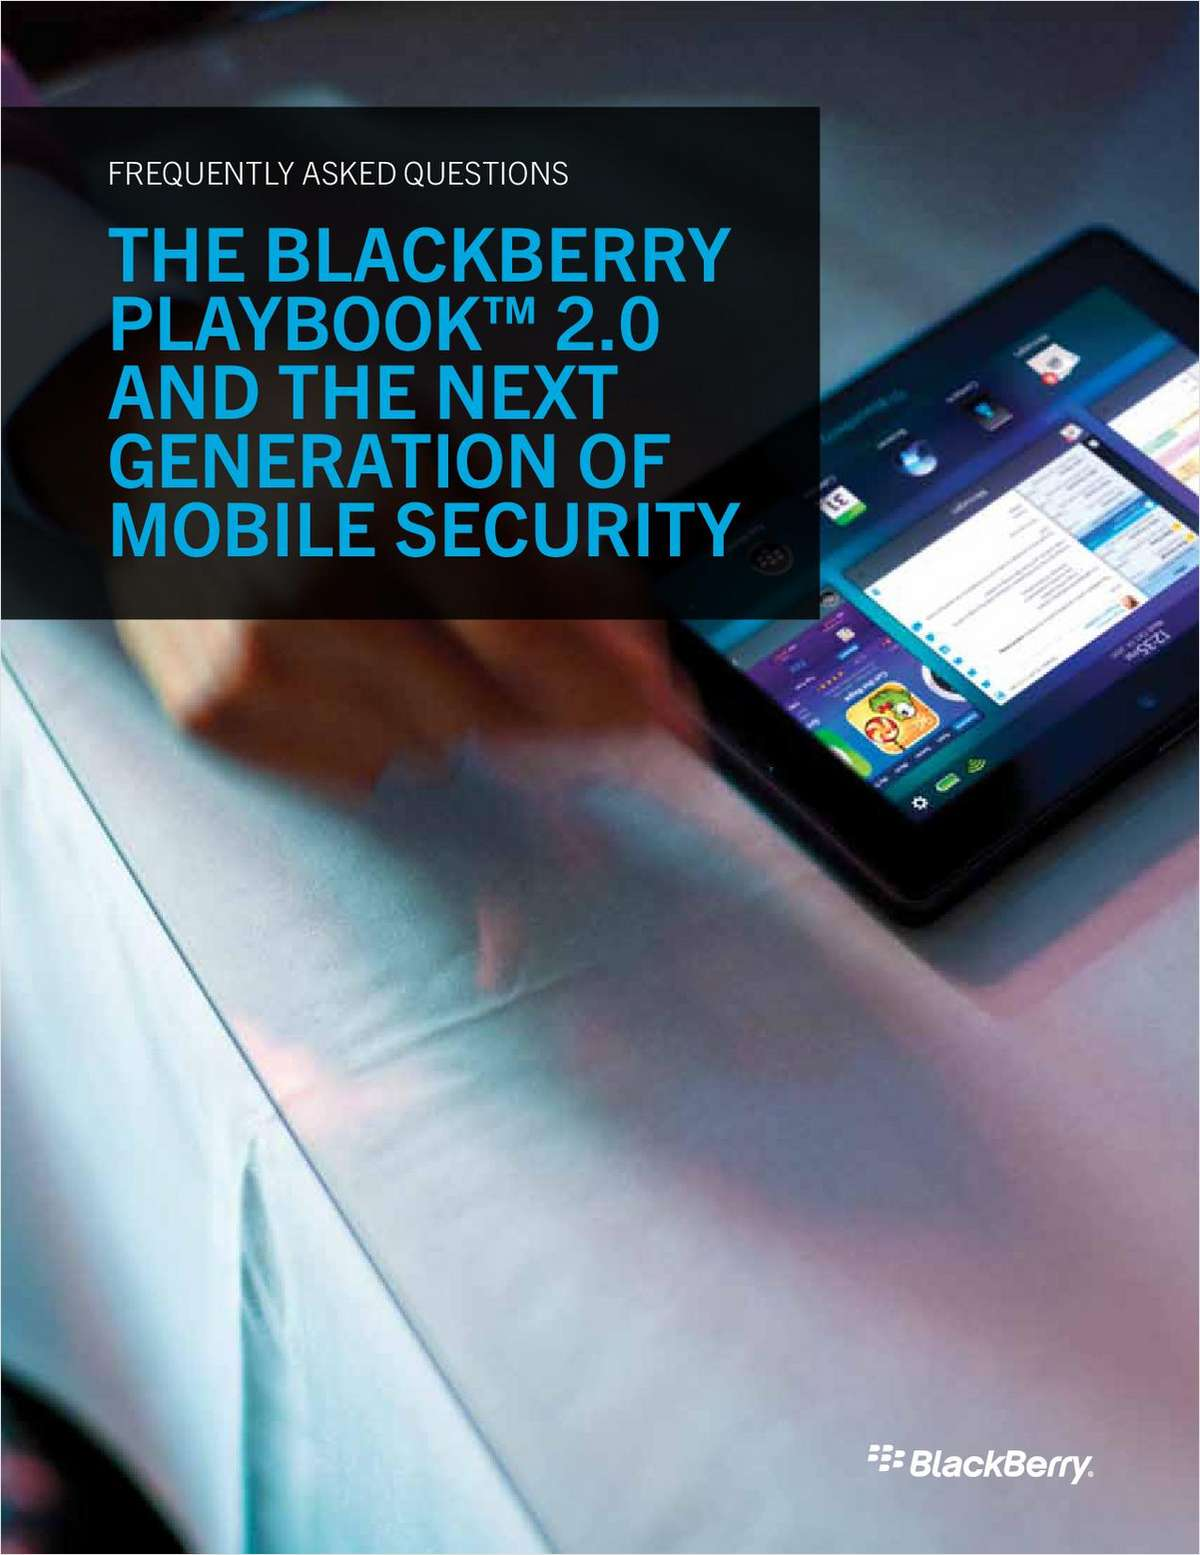 The BlackBerry® PlayBook™ 2.0 and the Next Generation of Mobile Security